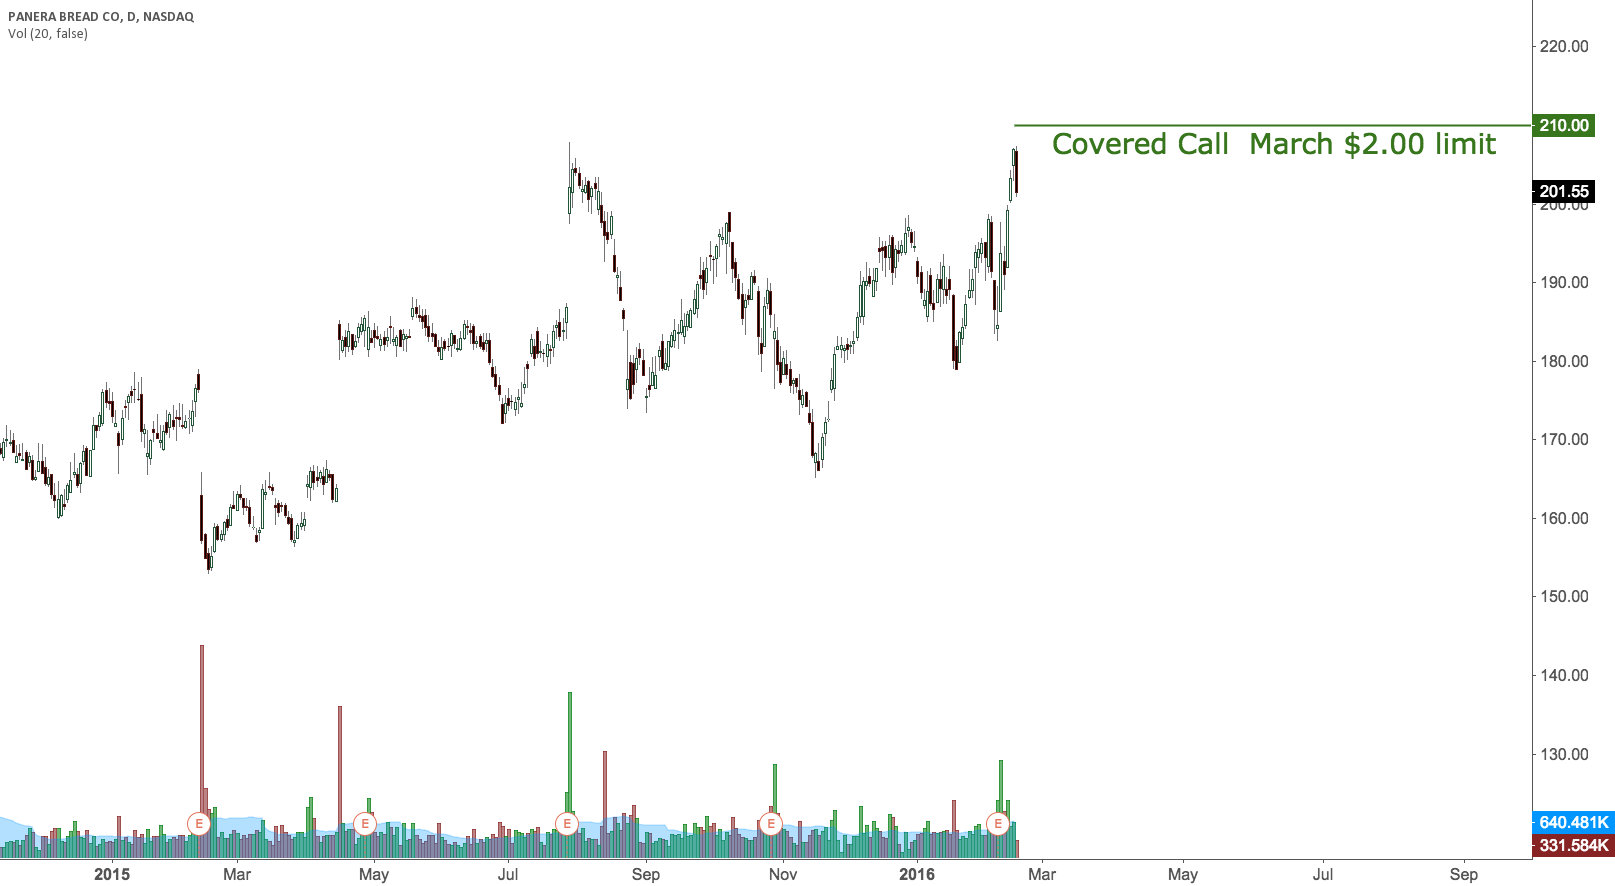 PNRA covered call